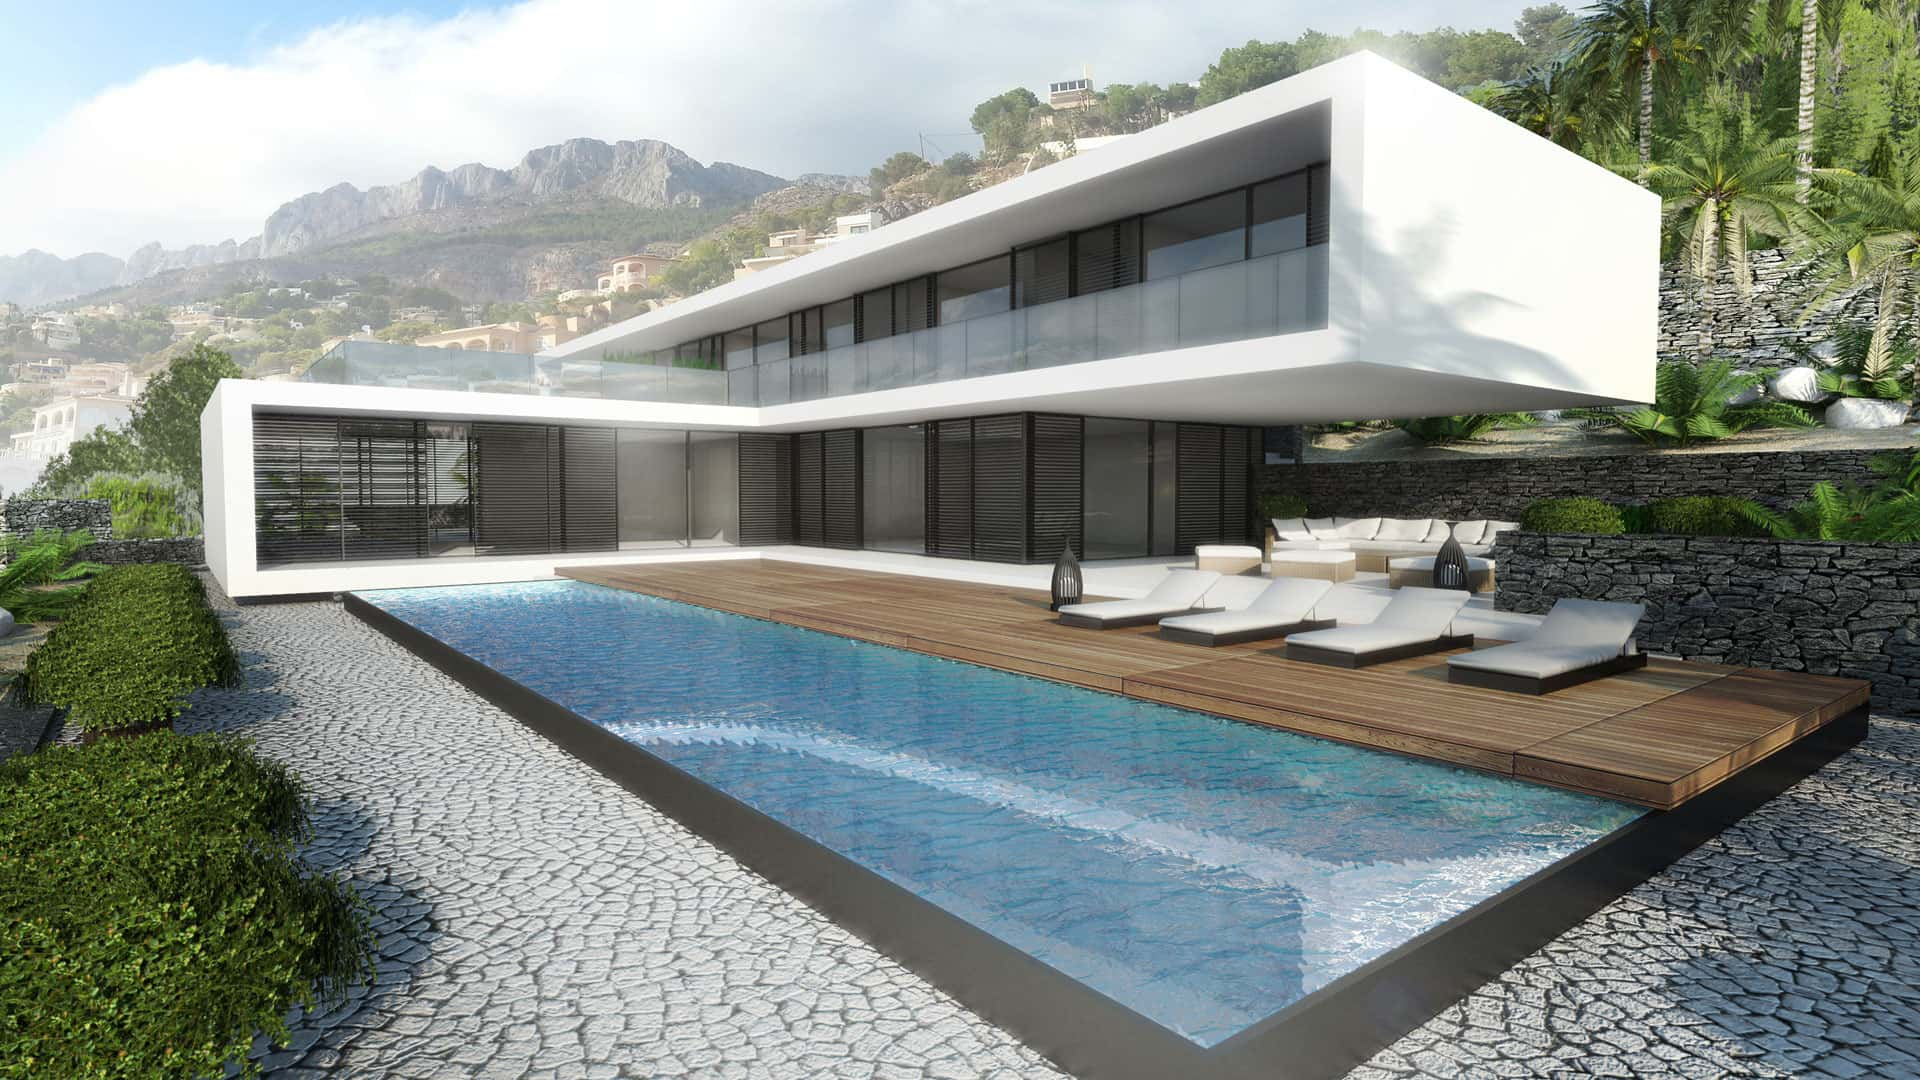 Modern Unexpected Concrete Flat Roof House Plans. Pool with the pebble pavement and the wooden deck for chaise-lounges